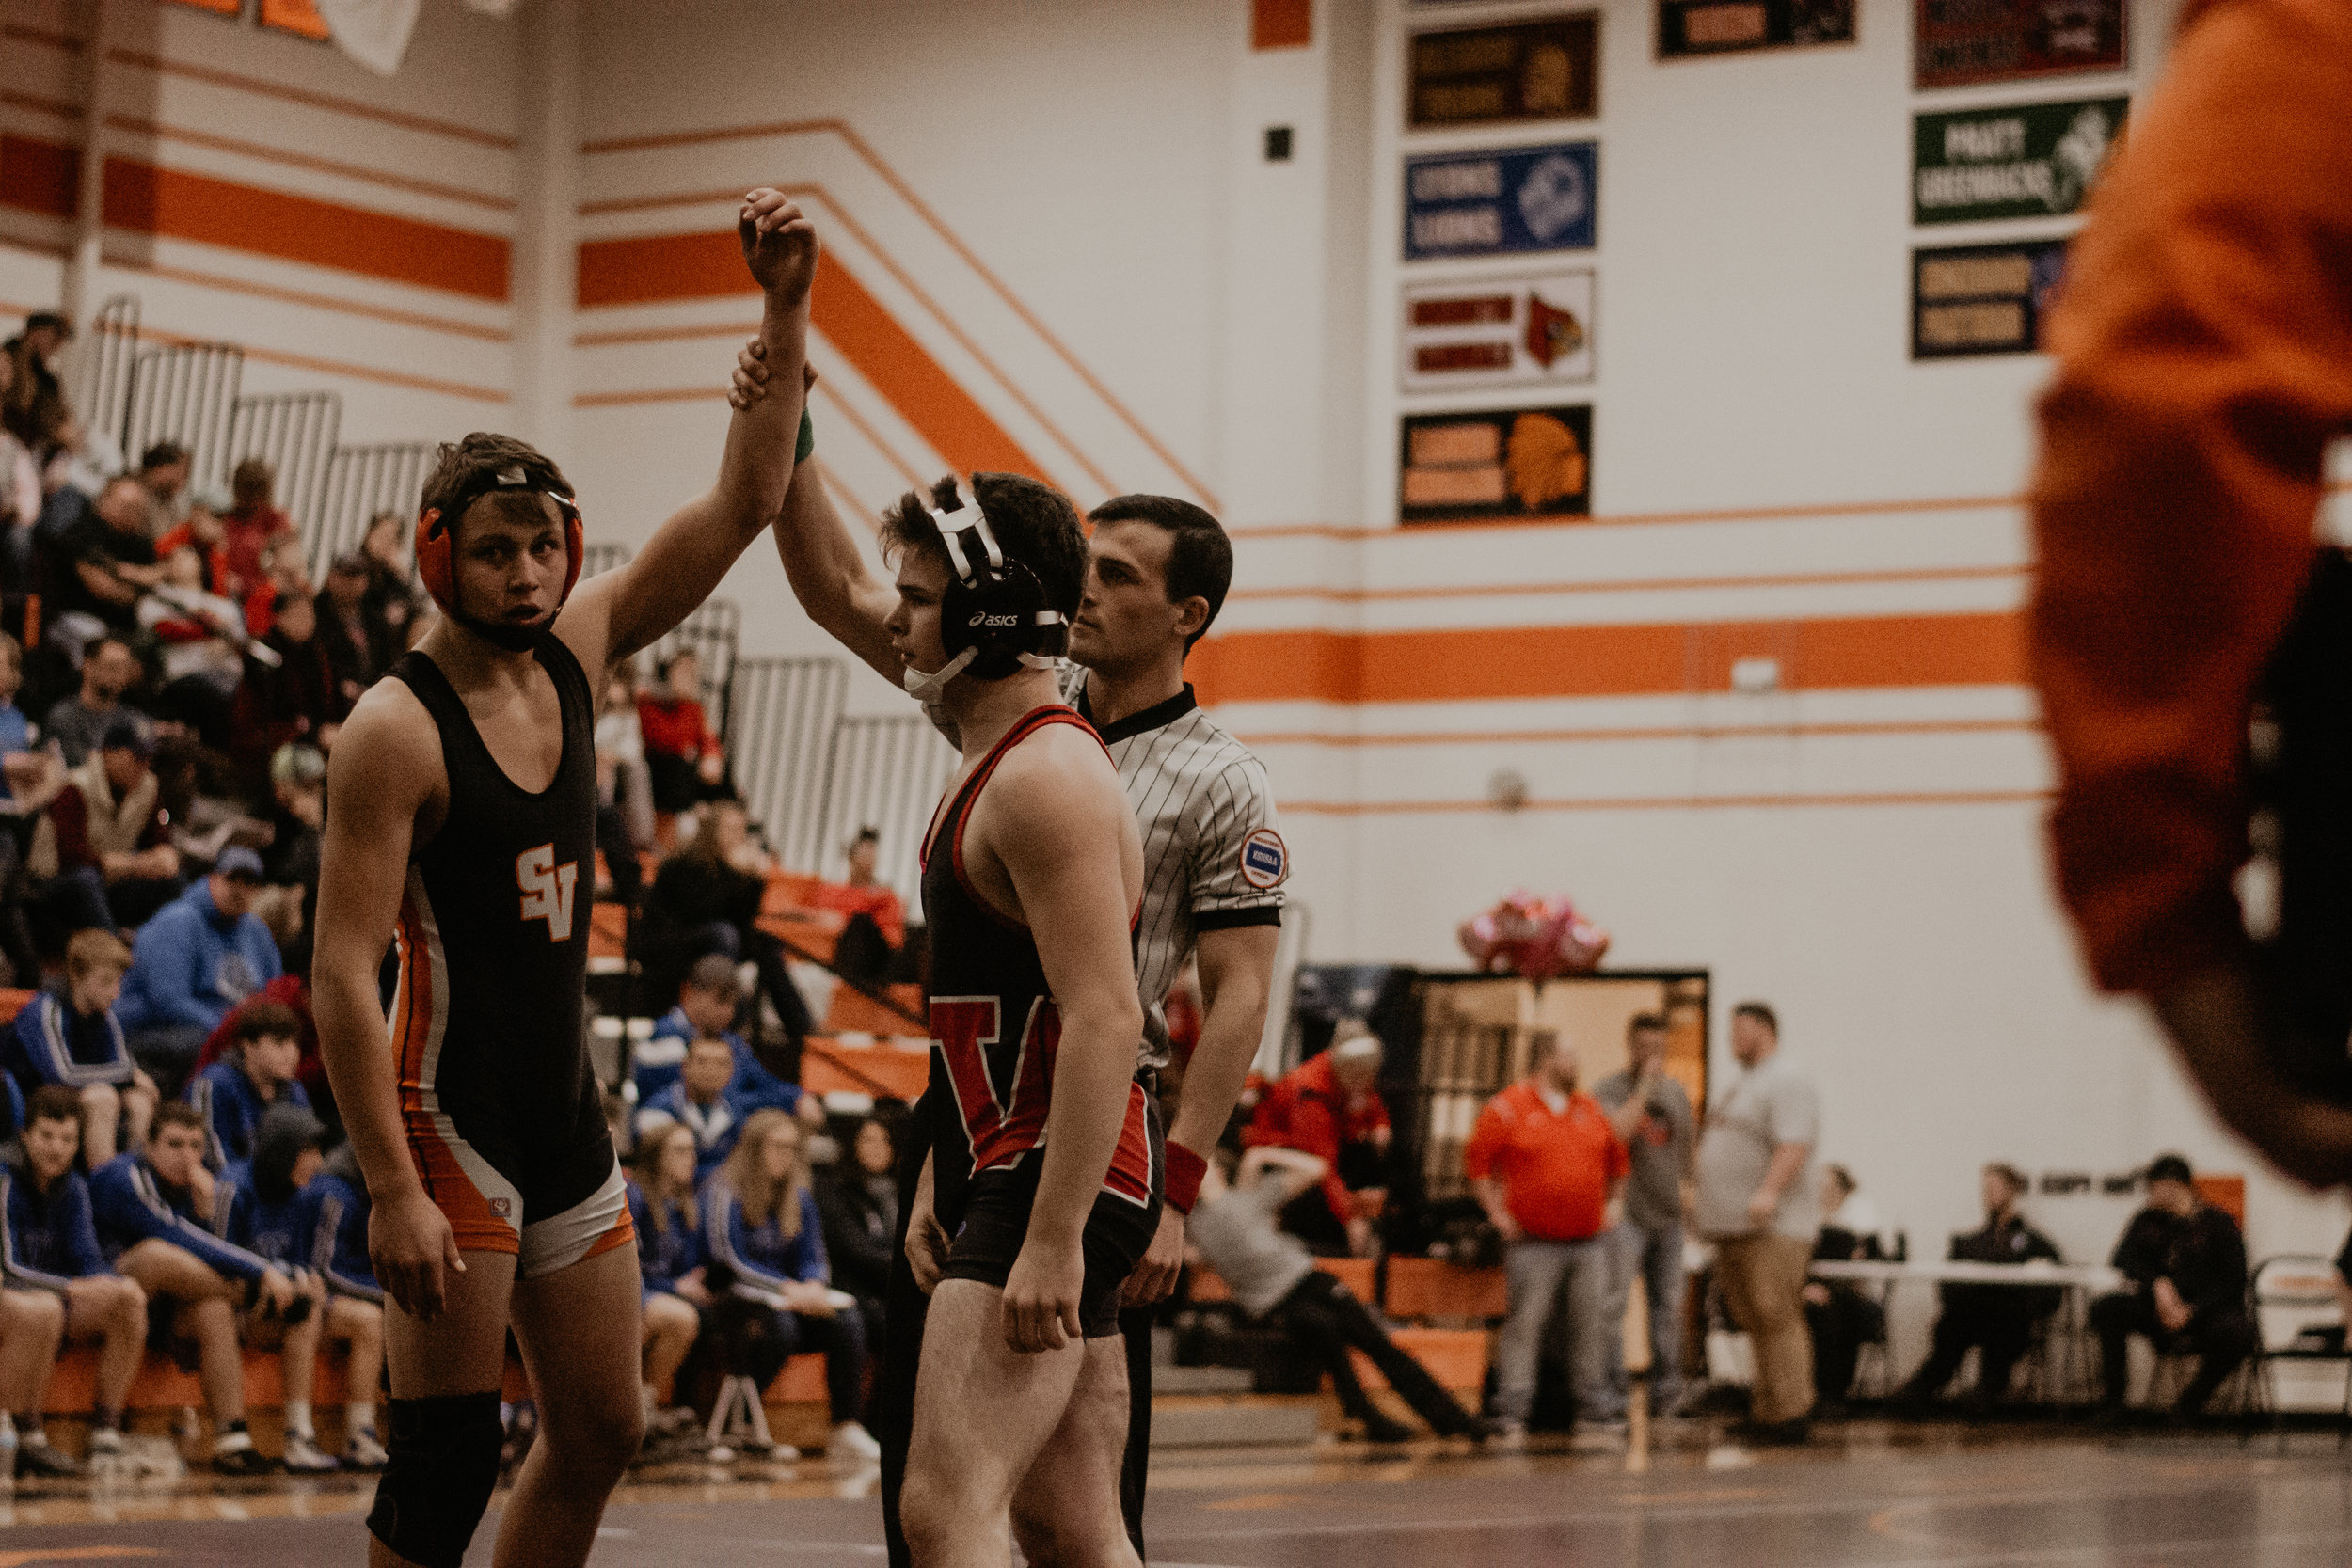 The four Viking mat men will head to the Tony's Pizza Event Center for the 4A State Wrestling Tournament in Salina on February 22 and 23 for a chance to be a state champion.